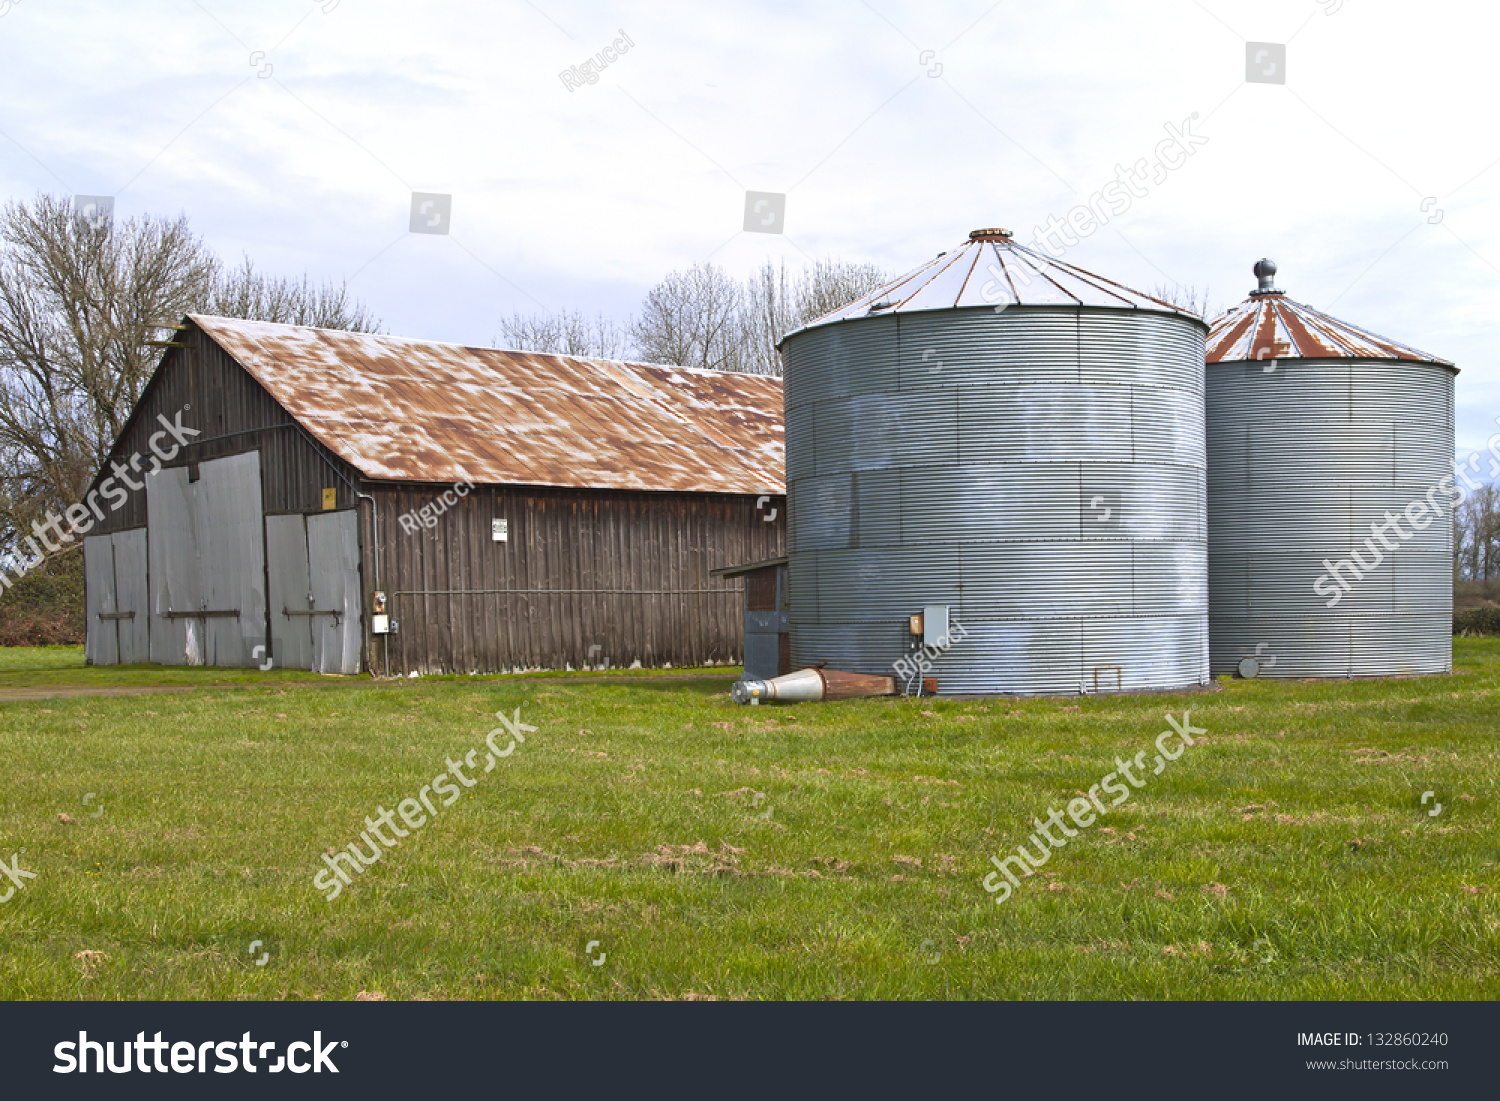 Old Rusty Abandoned Storage Shed Silo Stock Photo